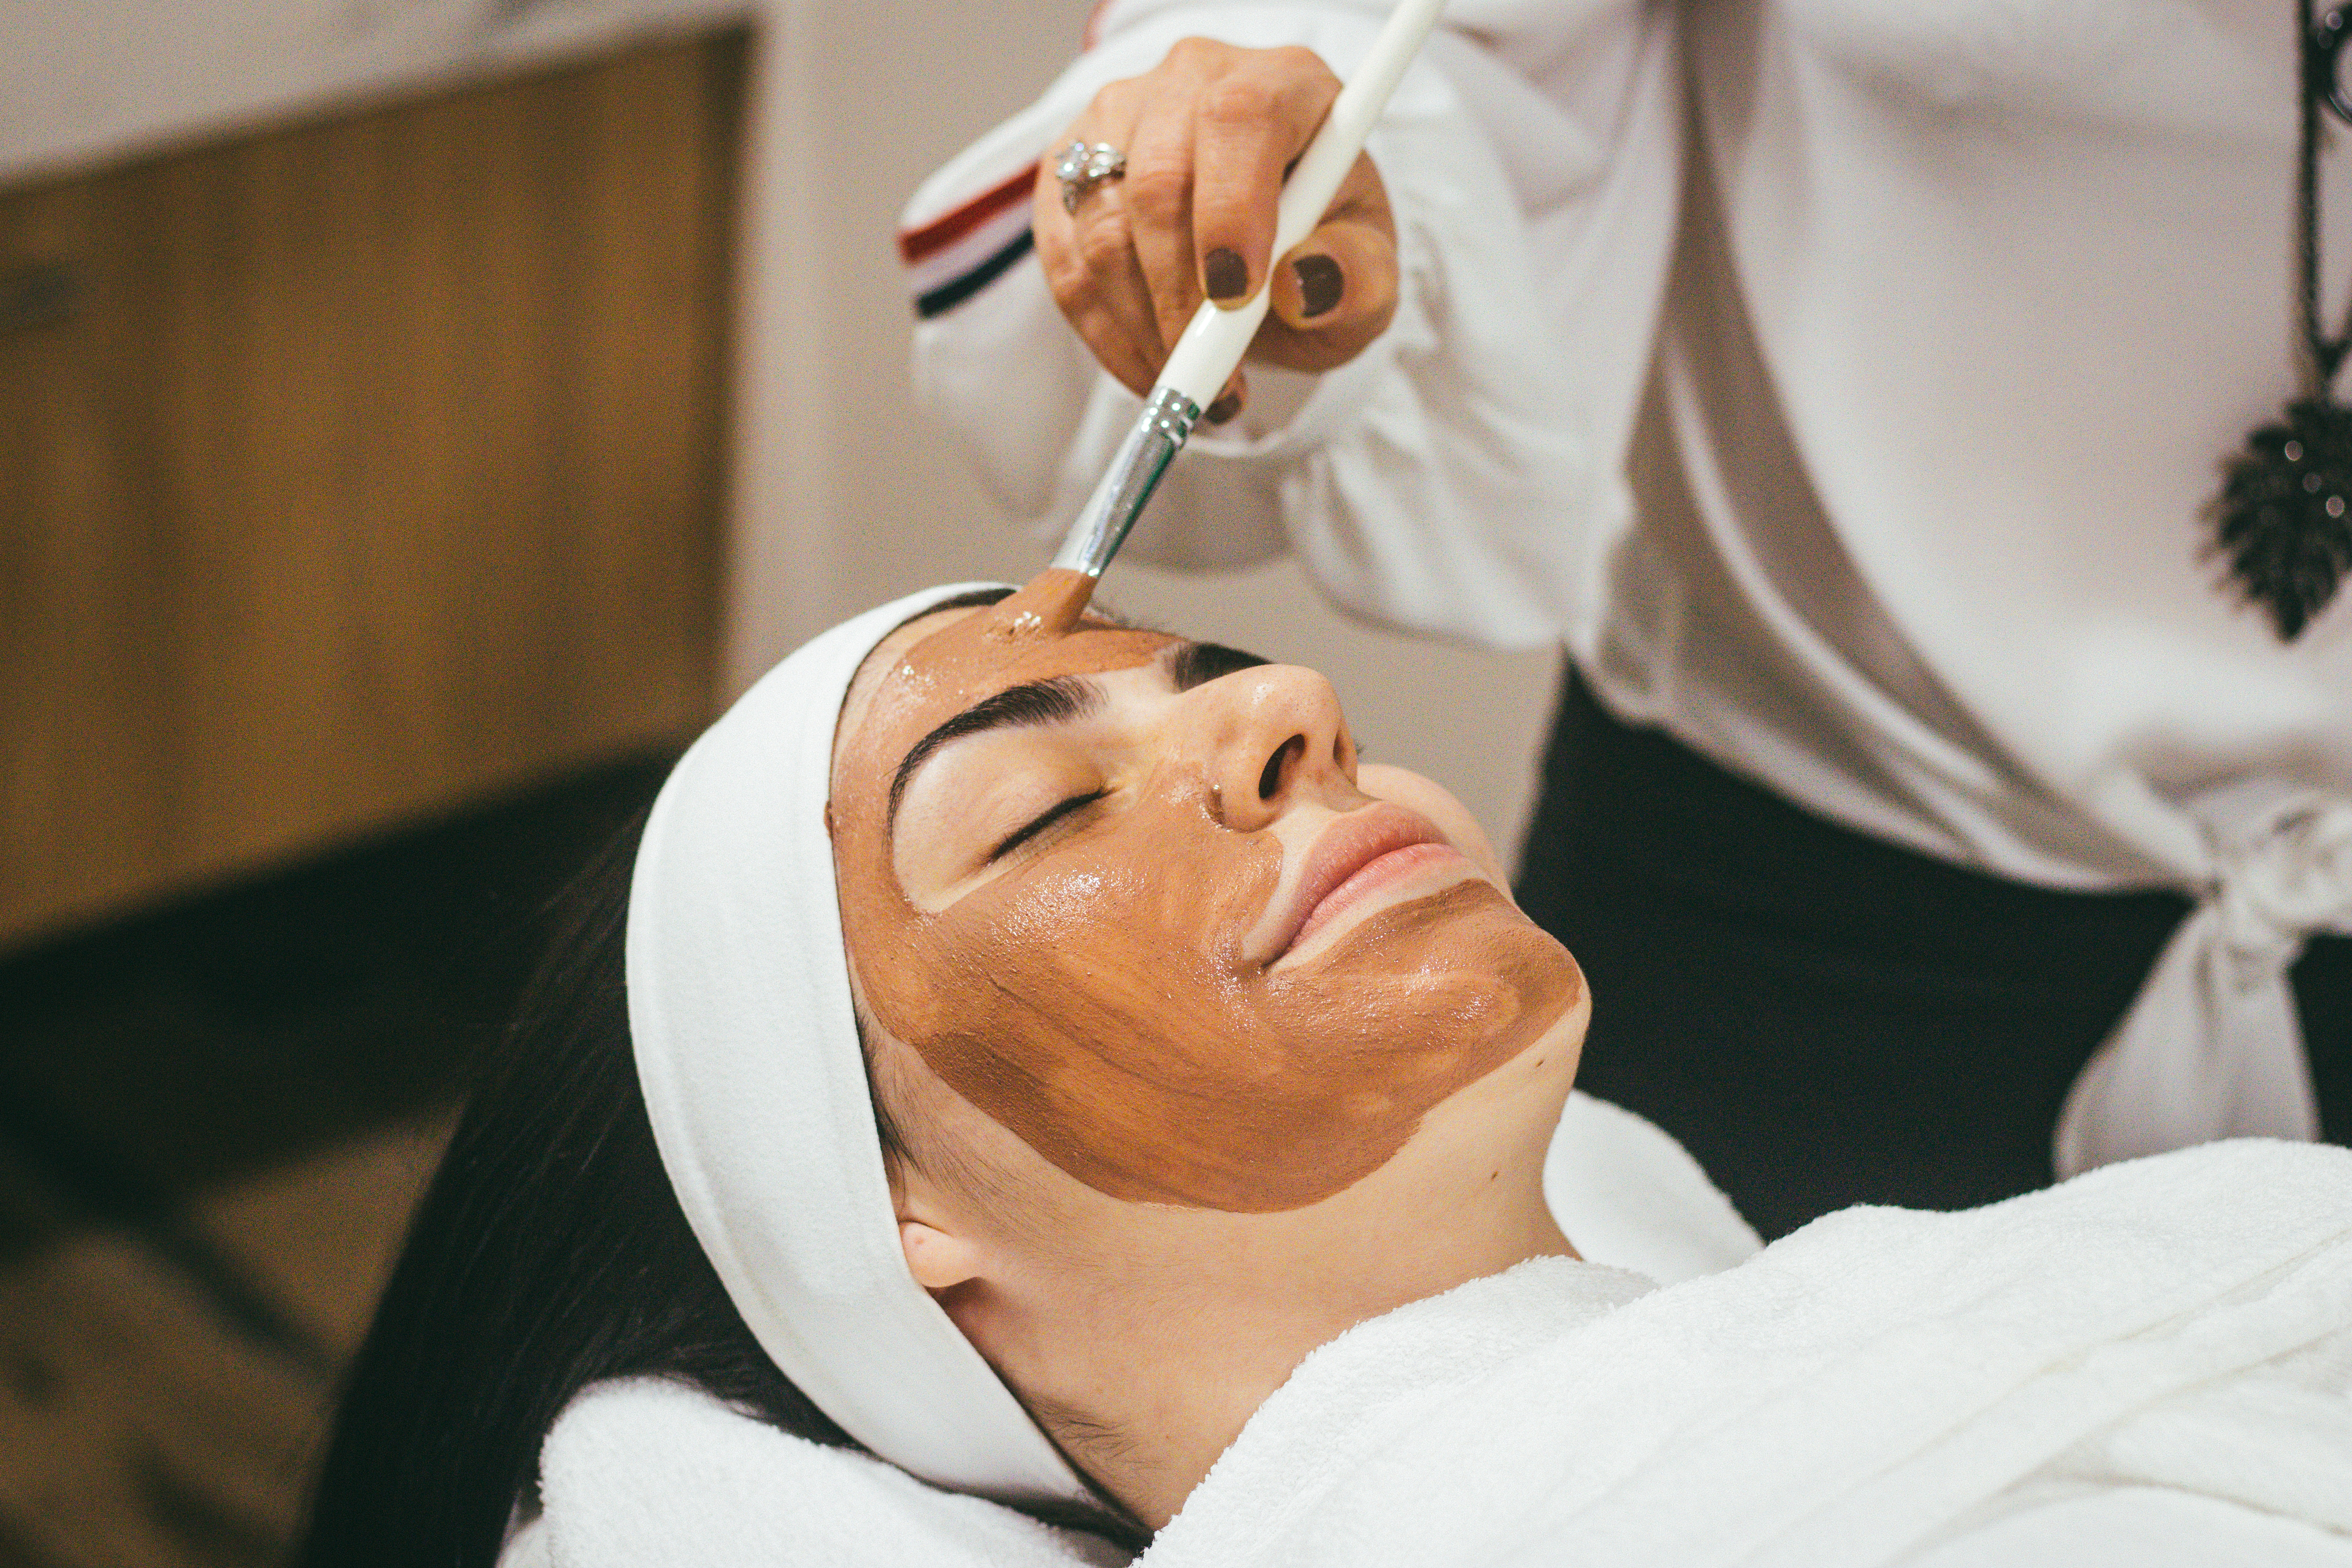 500 Beauty Salon Pictures Hd Download Free Images On Unsplash